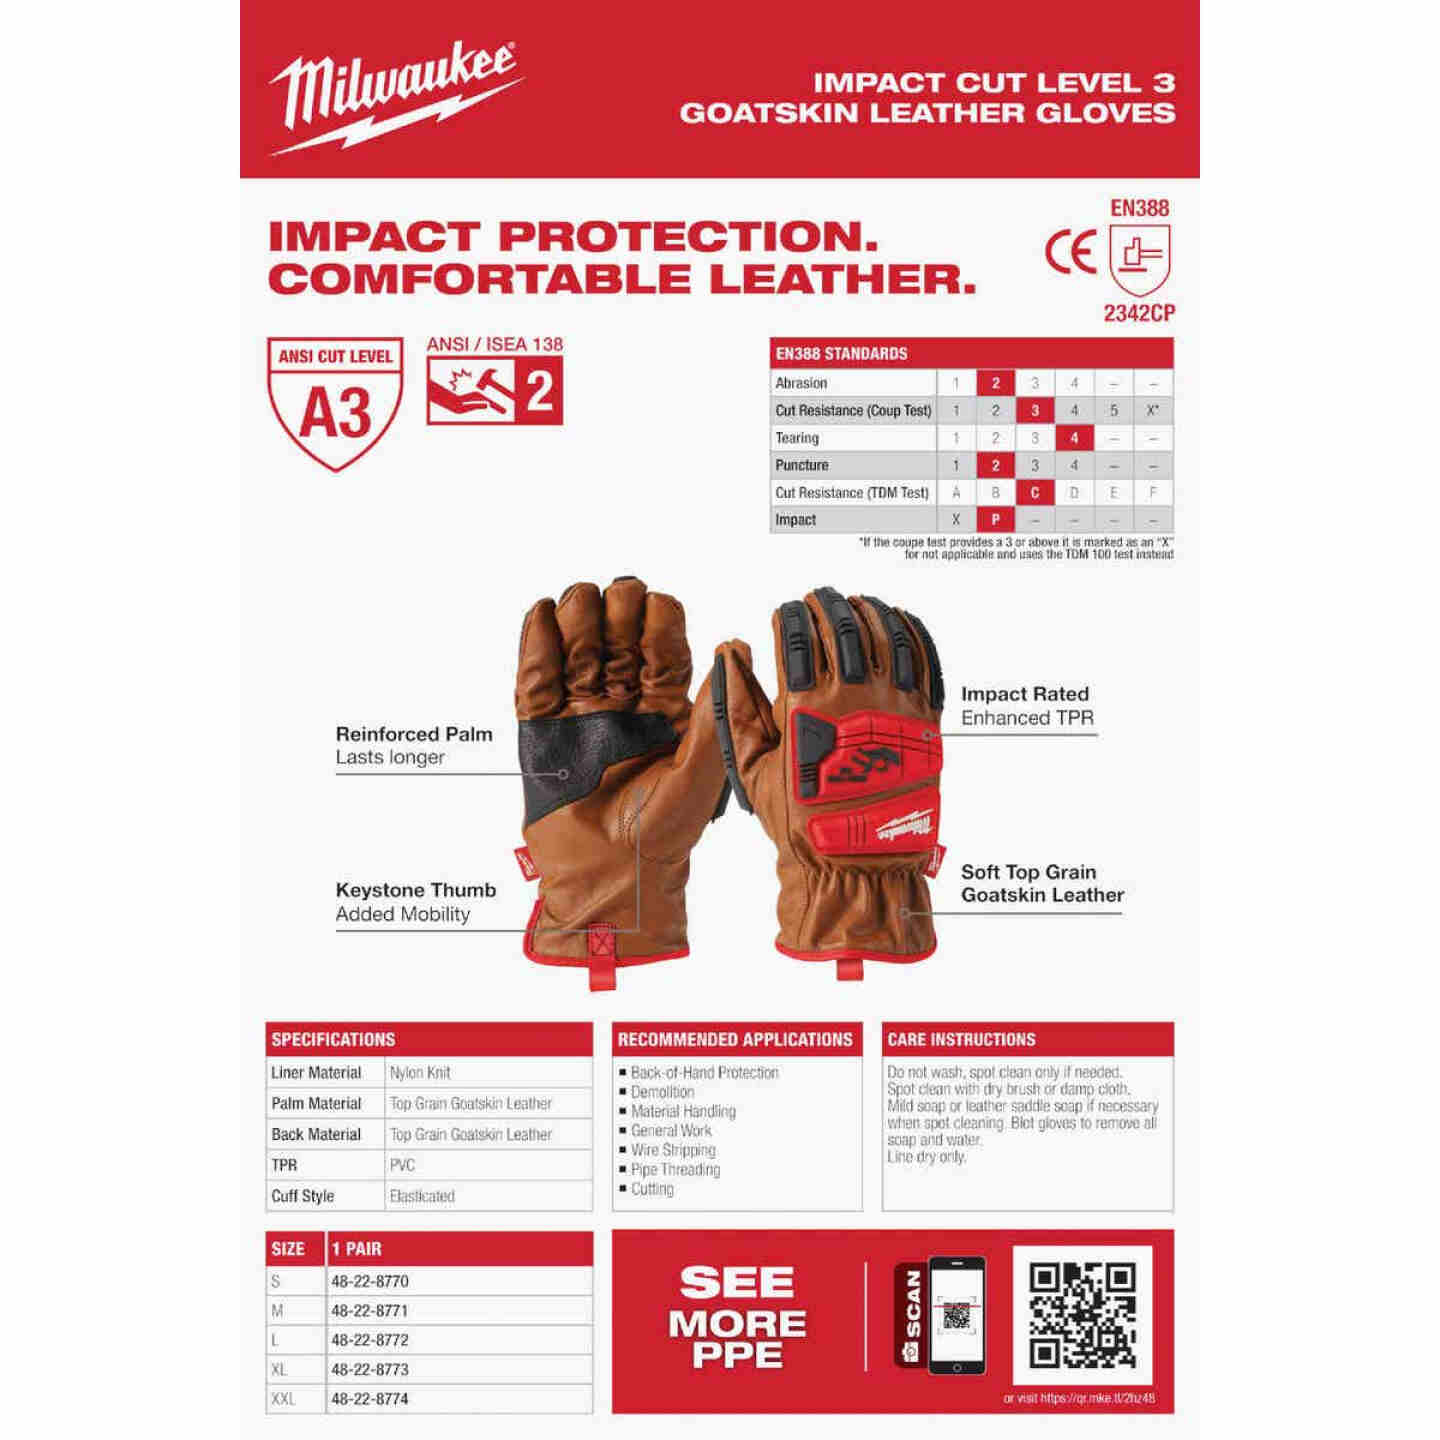 Milwaukee Impact Cut Level 3 Men's Large Goatskin Leather Work Gloves Image 5